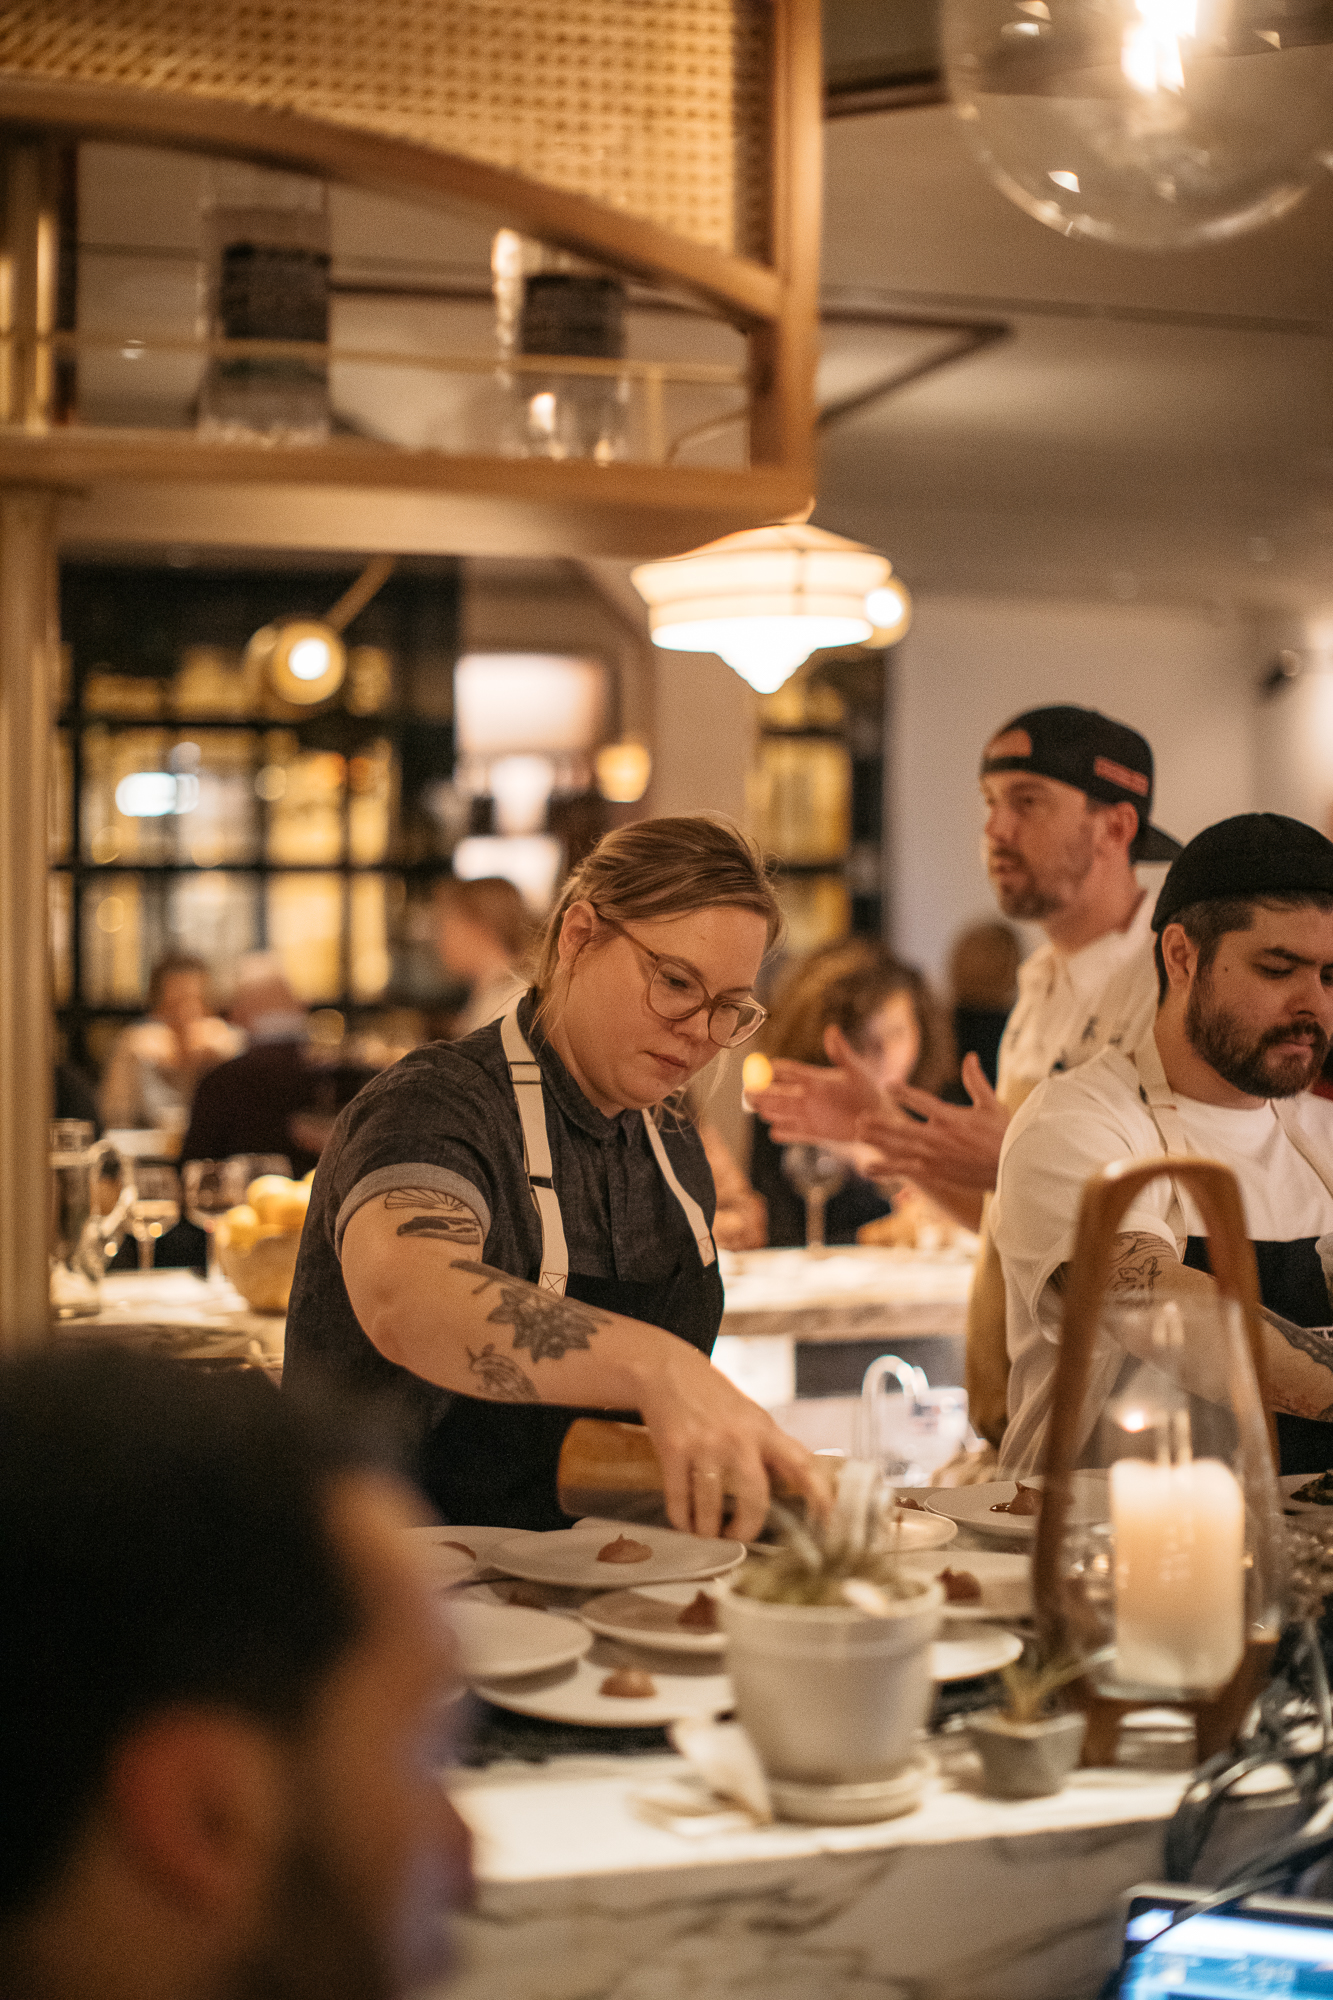 Chefs from award-winning restaurants, like Turkey & The Wolf, are cooking right alongside rising stars such as D.C.'s Autumn Cline, who it was announced at the dinner would be cooking at Kevin Tien's soon-to-open Emilie's. (Image: Betty Clicker Photography)